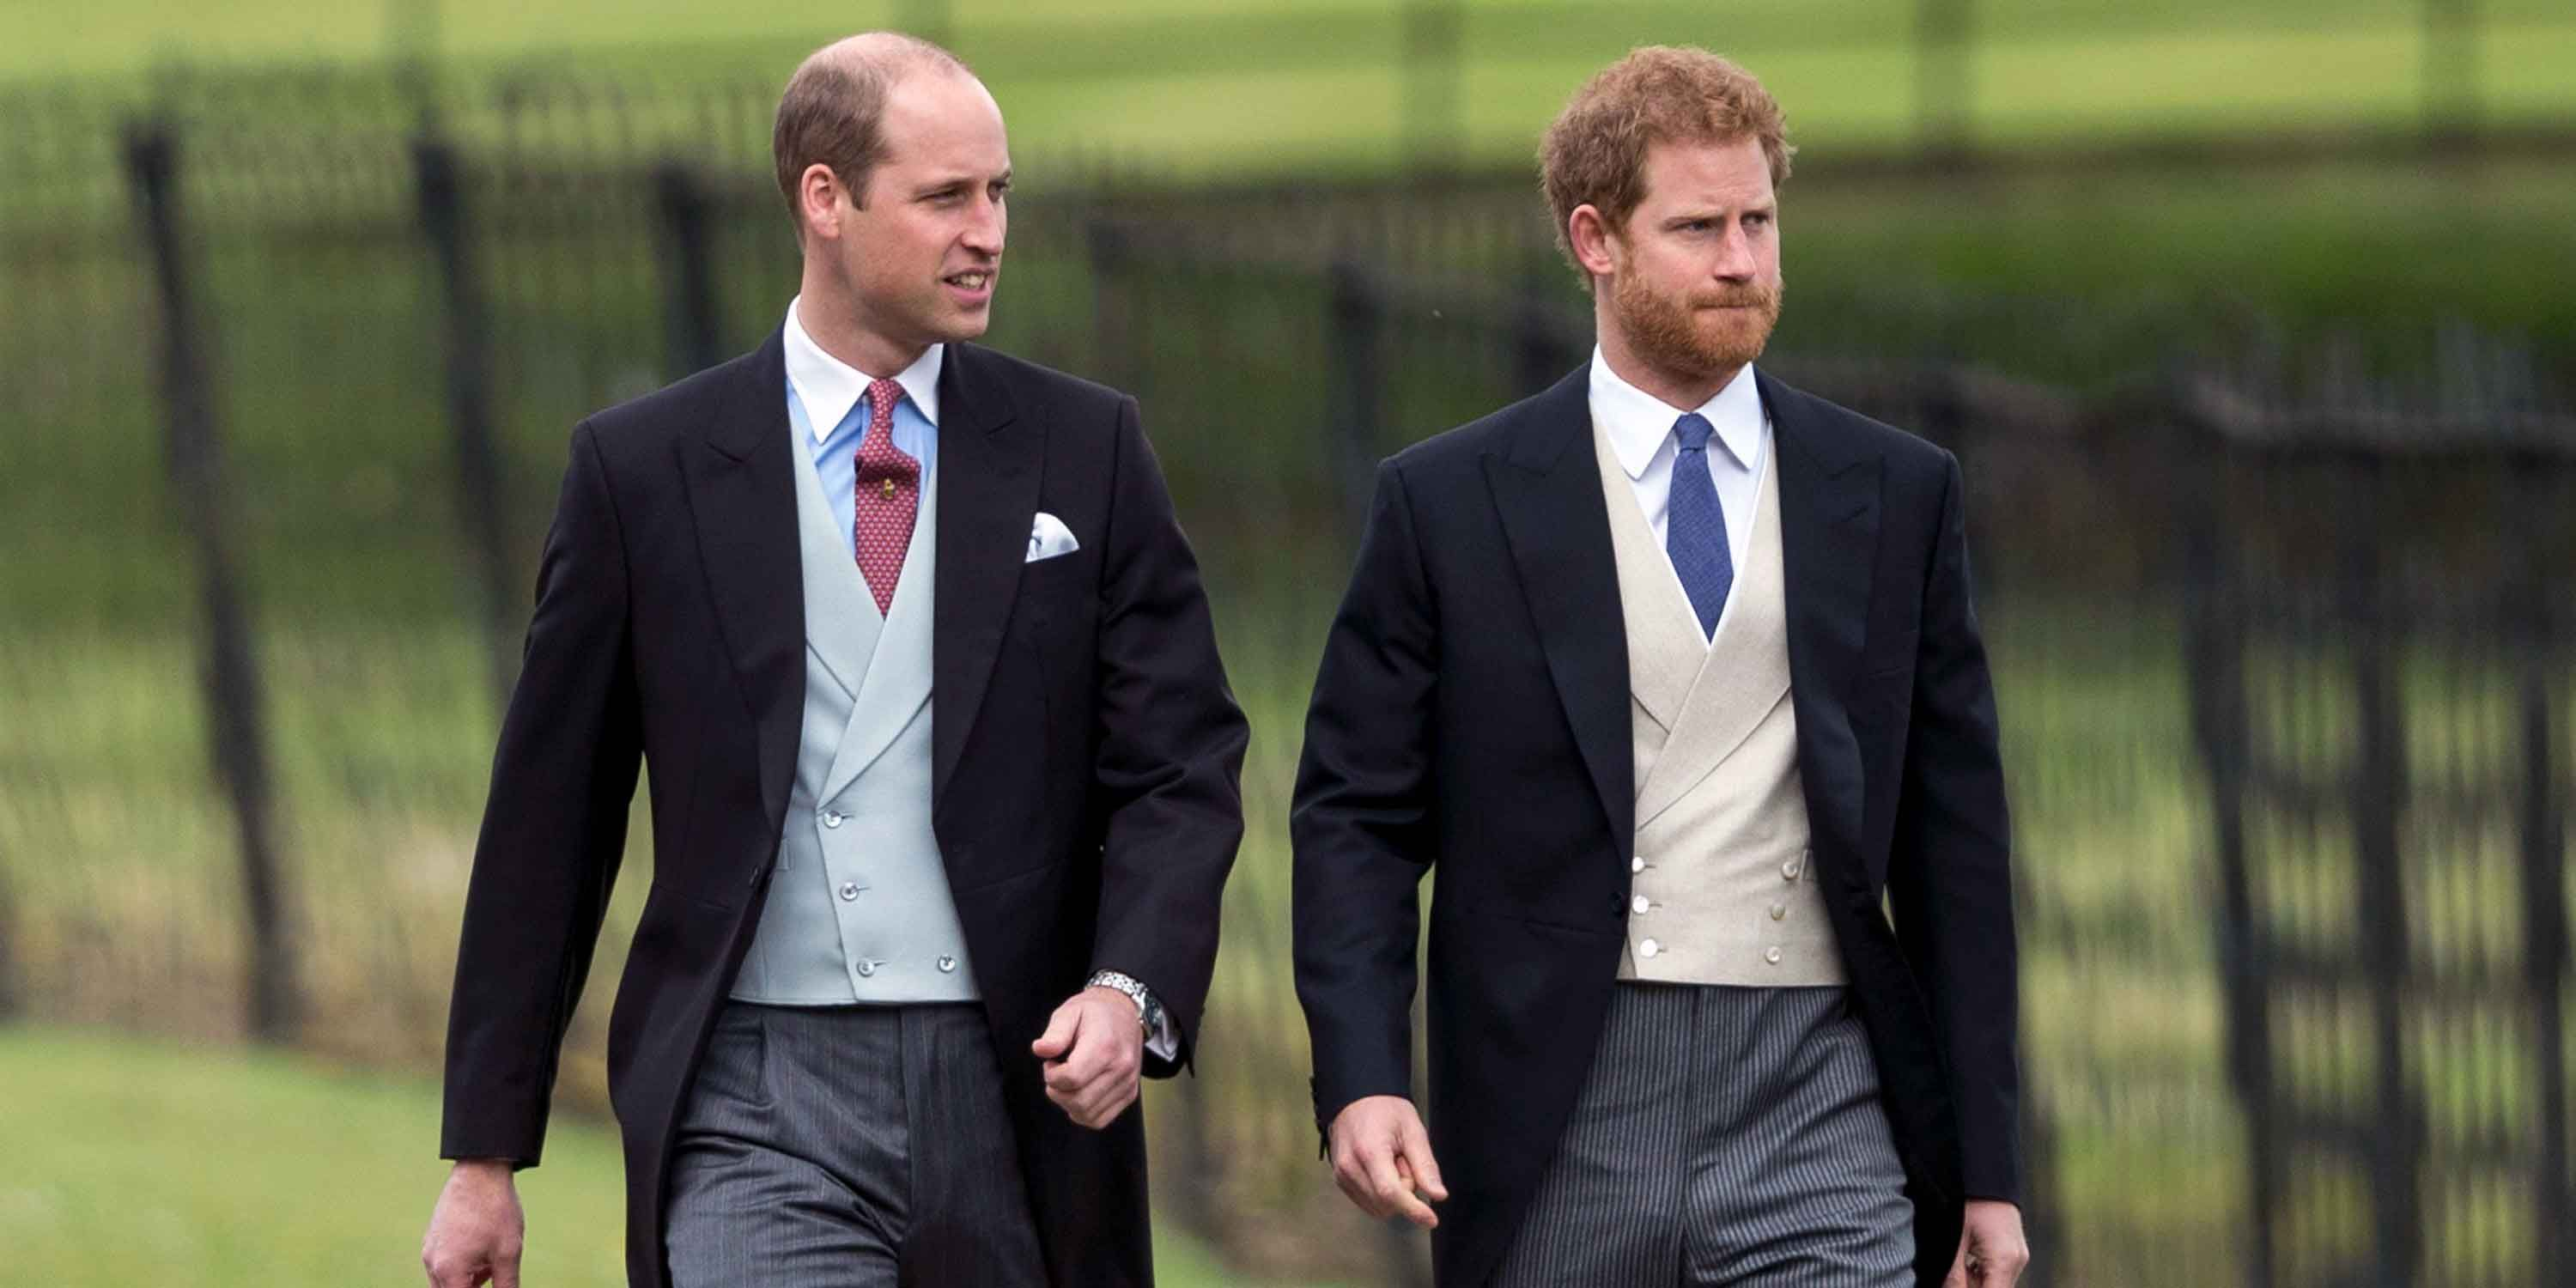 żakiet - morning coat - william i harry